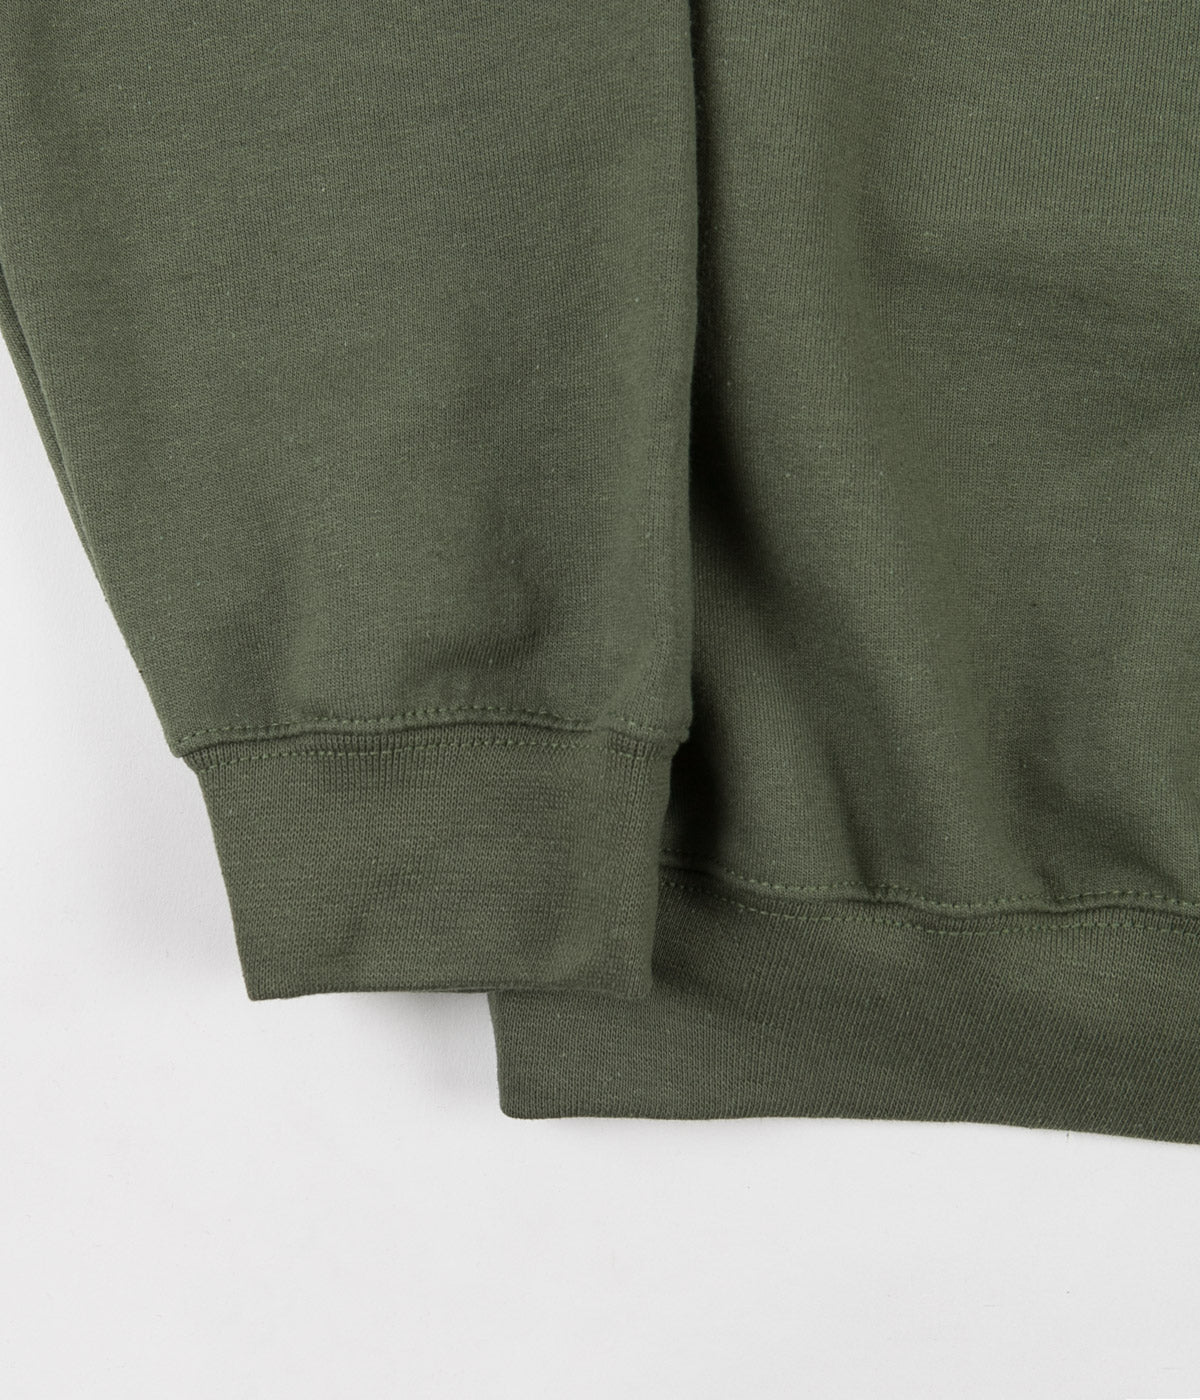 Frog Napkin Friend Crewneck Sweatshirt - Army